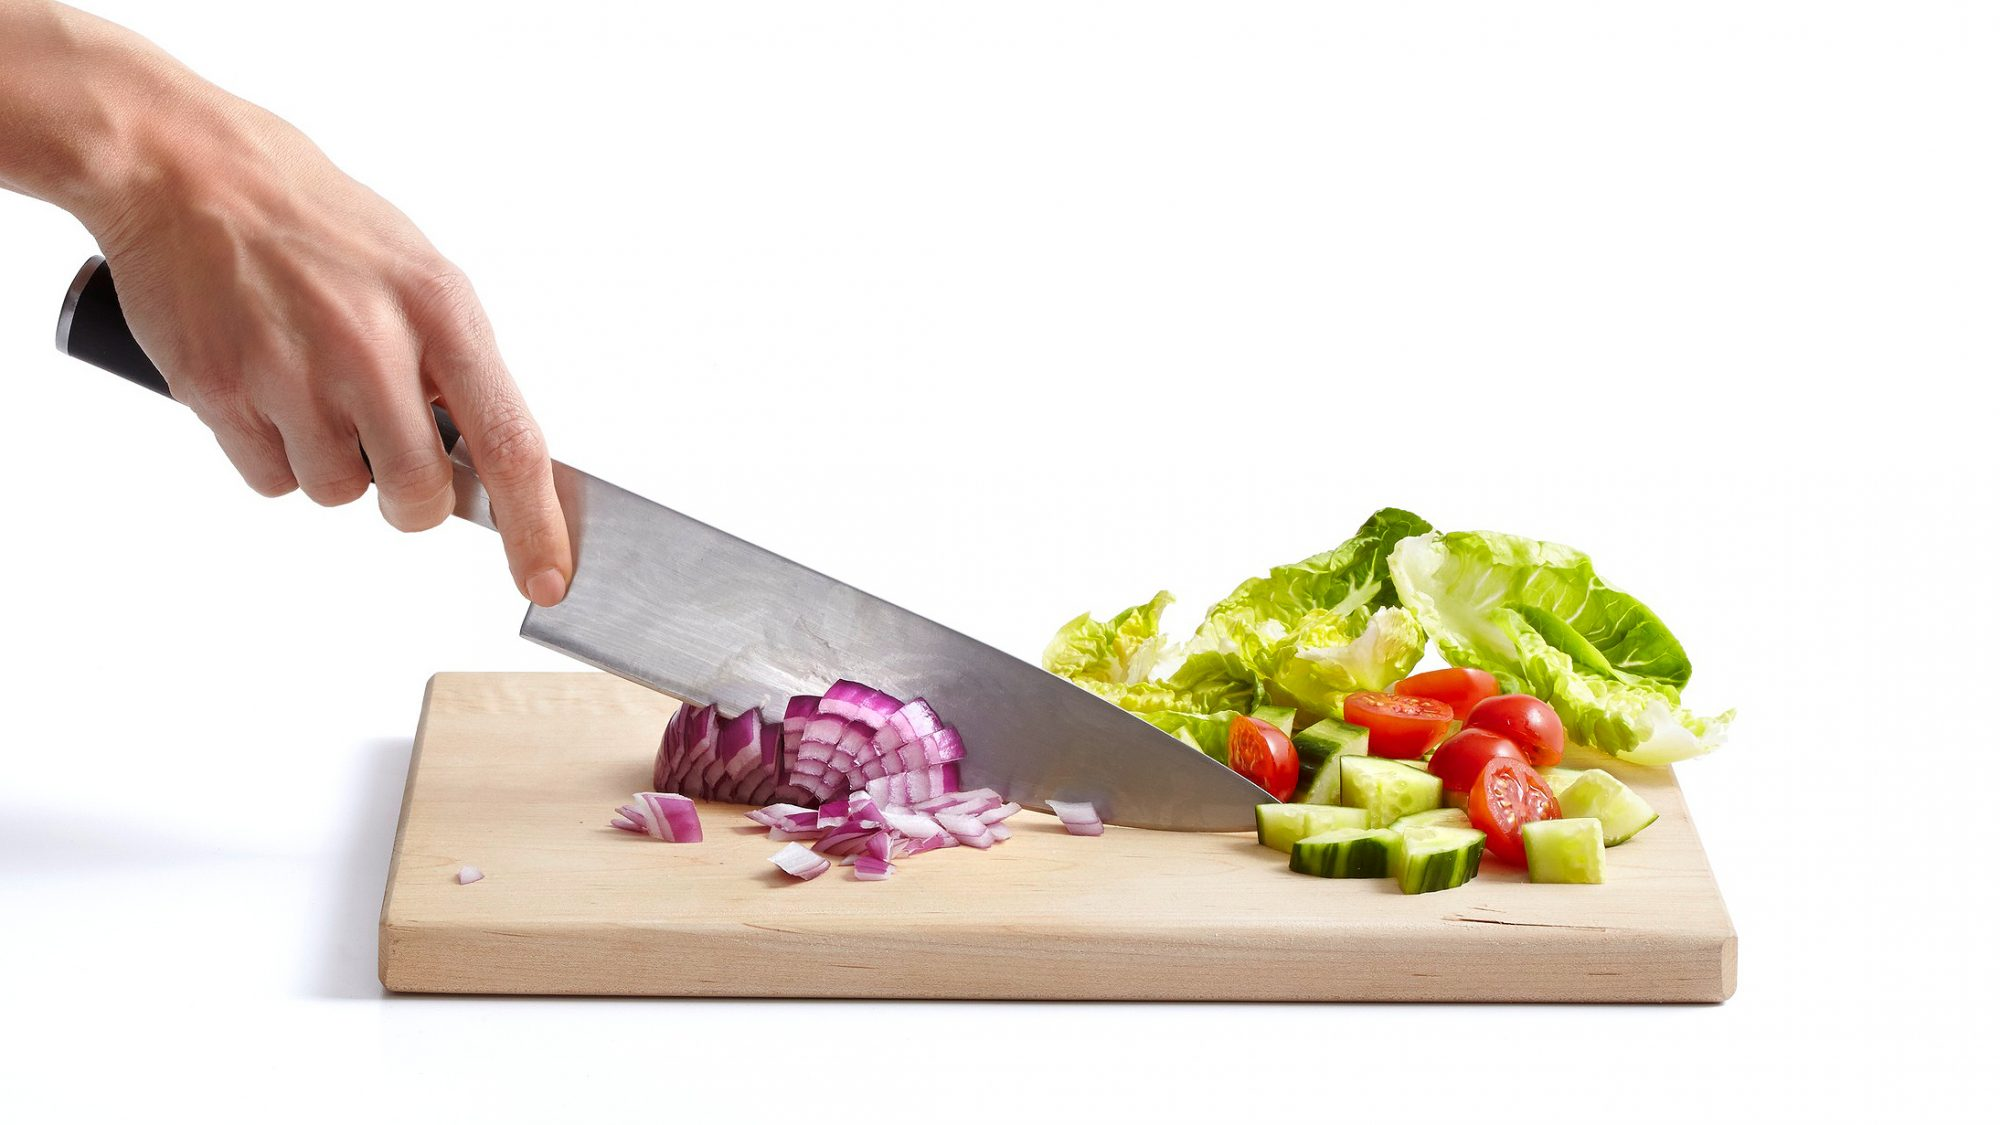 chopping onion lettuce cucumbers and cherry tomatoes on cutting board